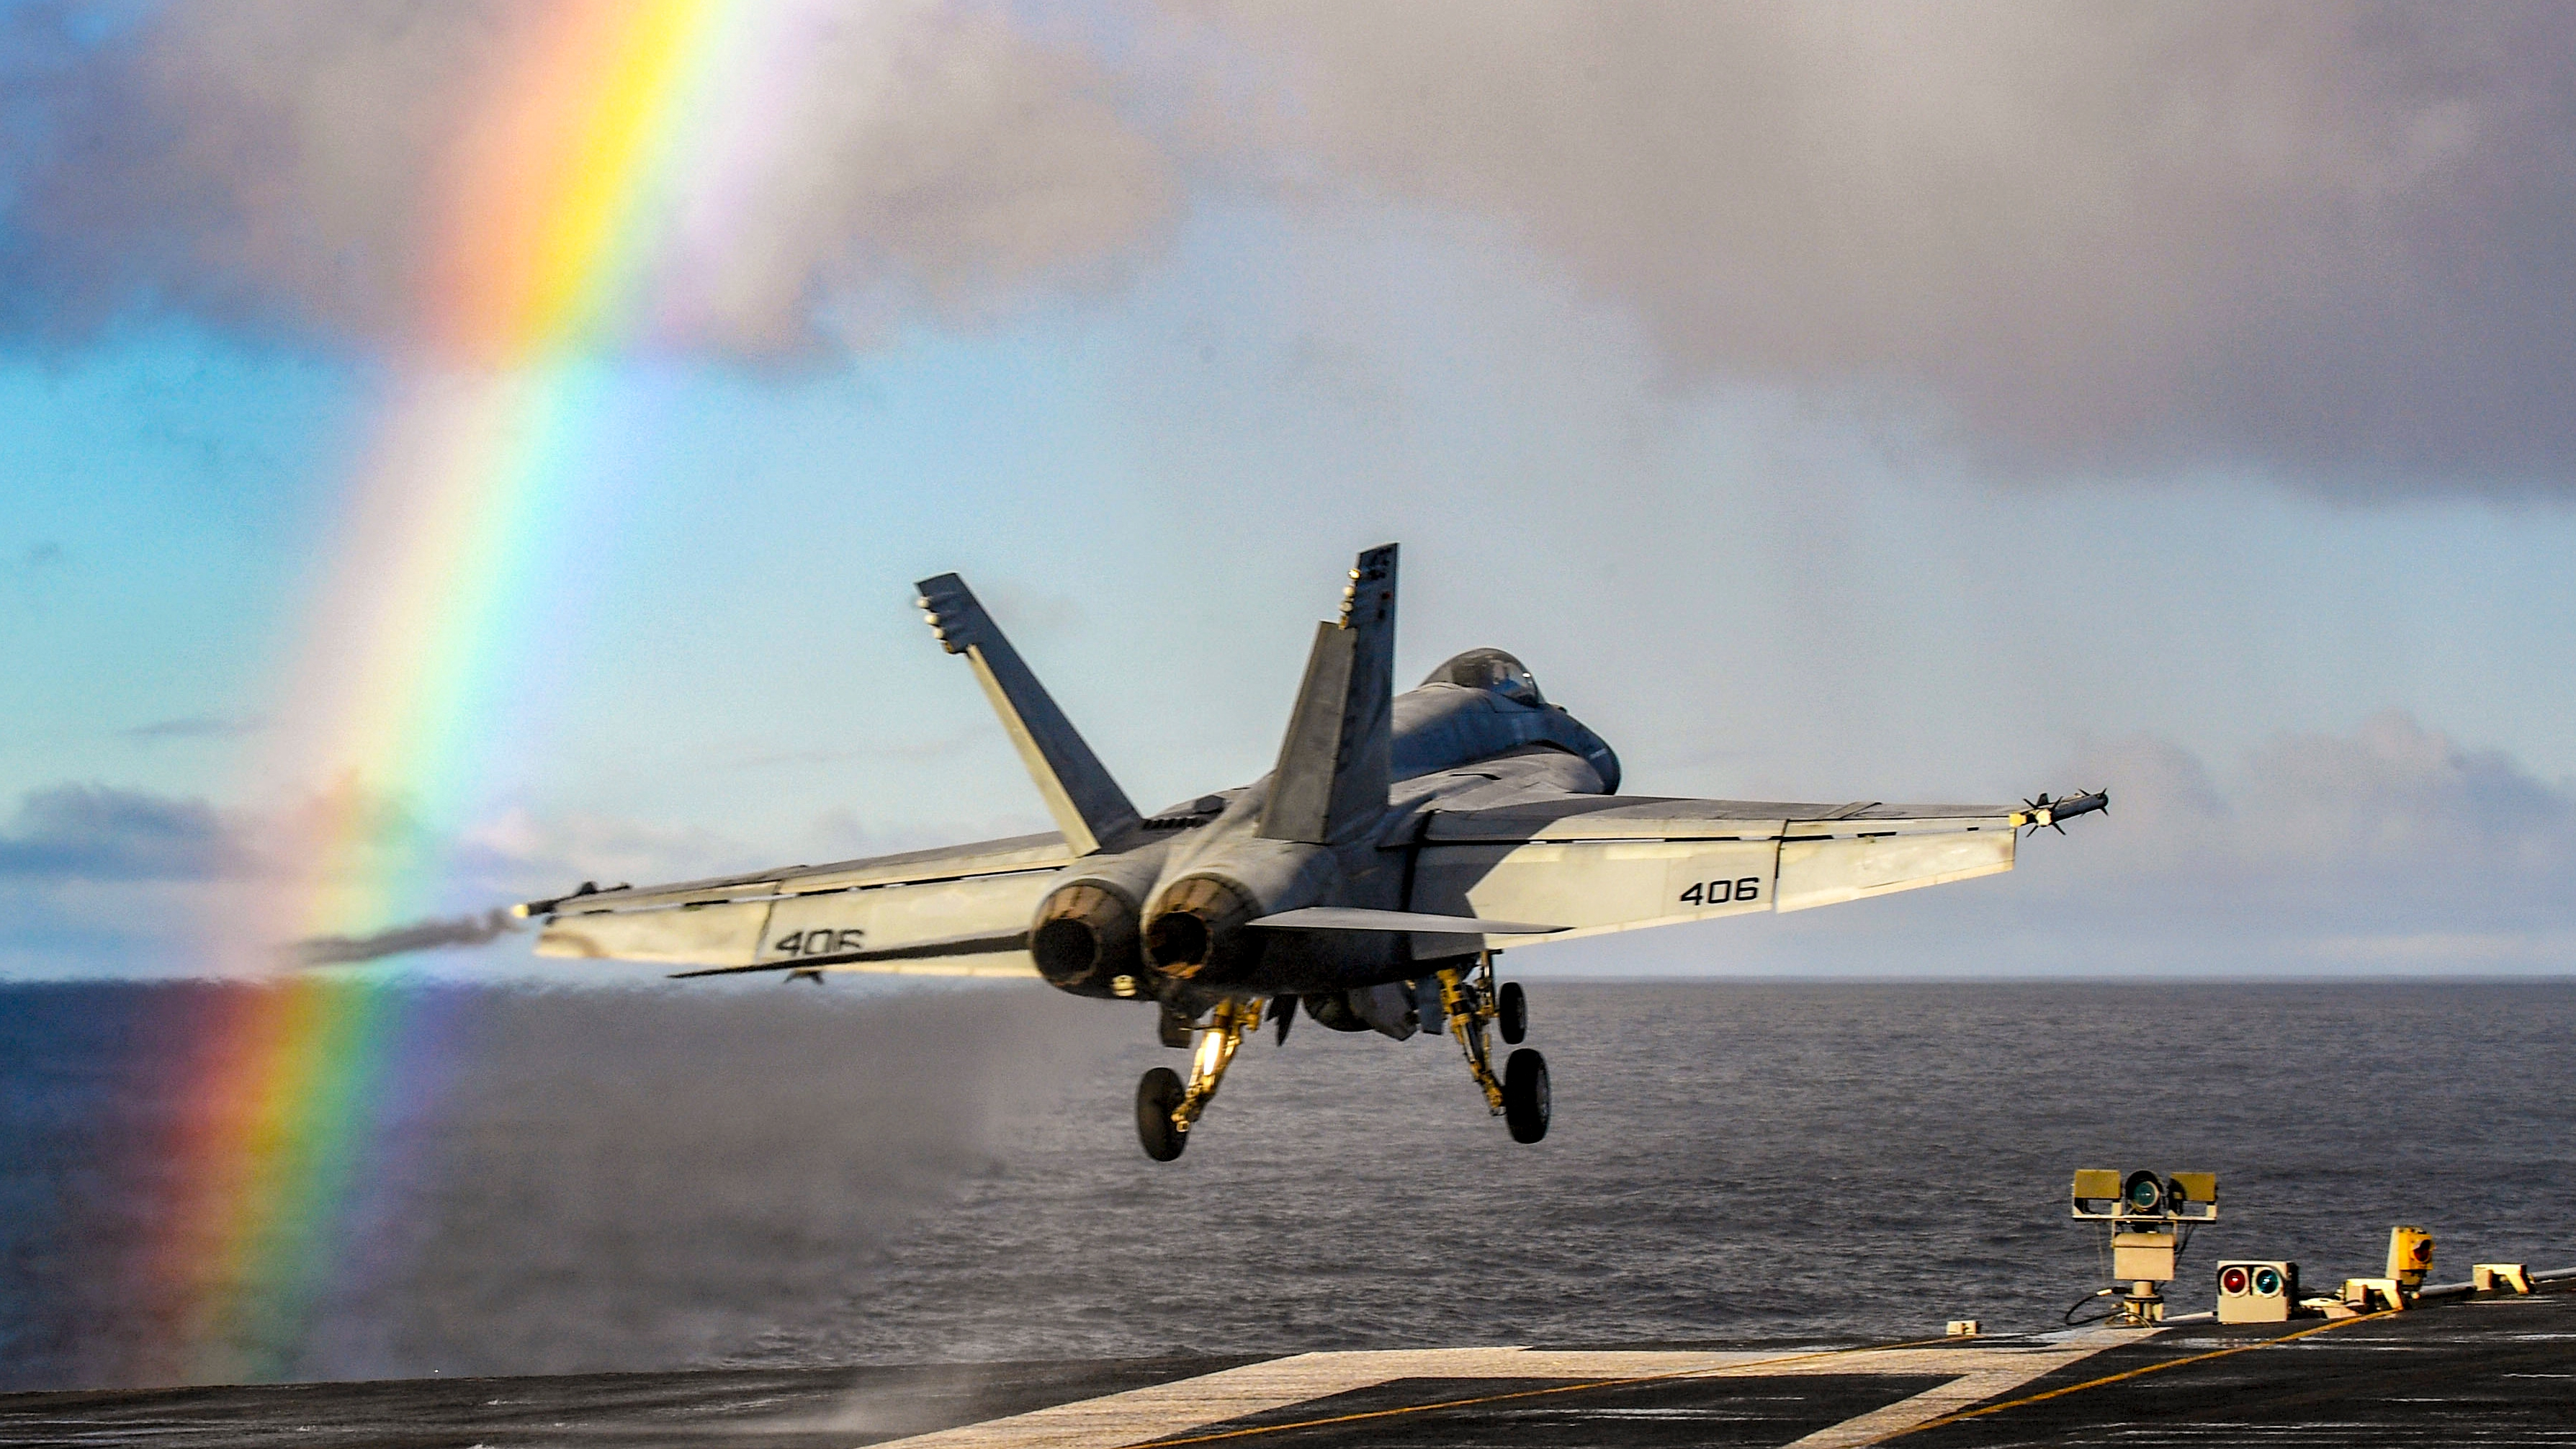 A U. S. Navy F/A-18E Super Hornet, assigned to the 'Sunliners' of Strike Fighter Squadron (VFA) 81, launches from the Nimitz-class aircraft carrier USS Harry S. Truman (CVN 75) in support of Trident Juncture 18 in the Norwegian Sea October 25, 2018. With more than 50,000 participants from 30 Allied and partner nations, Trident Juncture 18 is taking place in Norway and the surrounding areas of the North Atlantic and the Baltic Sea, including Iceland and the airspace of Finland and Sweden. (MC3 Adelola Tinubu/Navy)